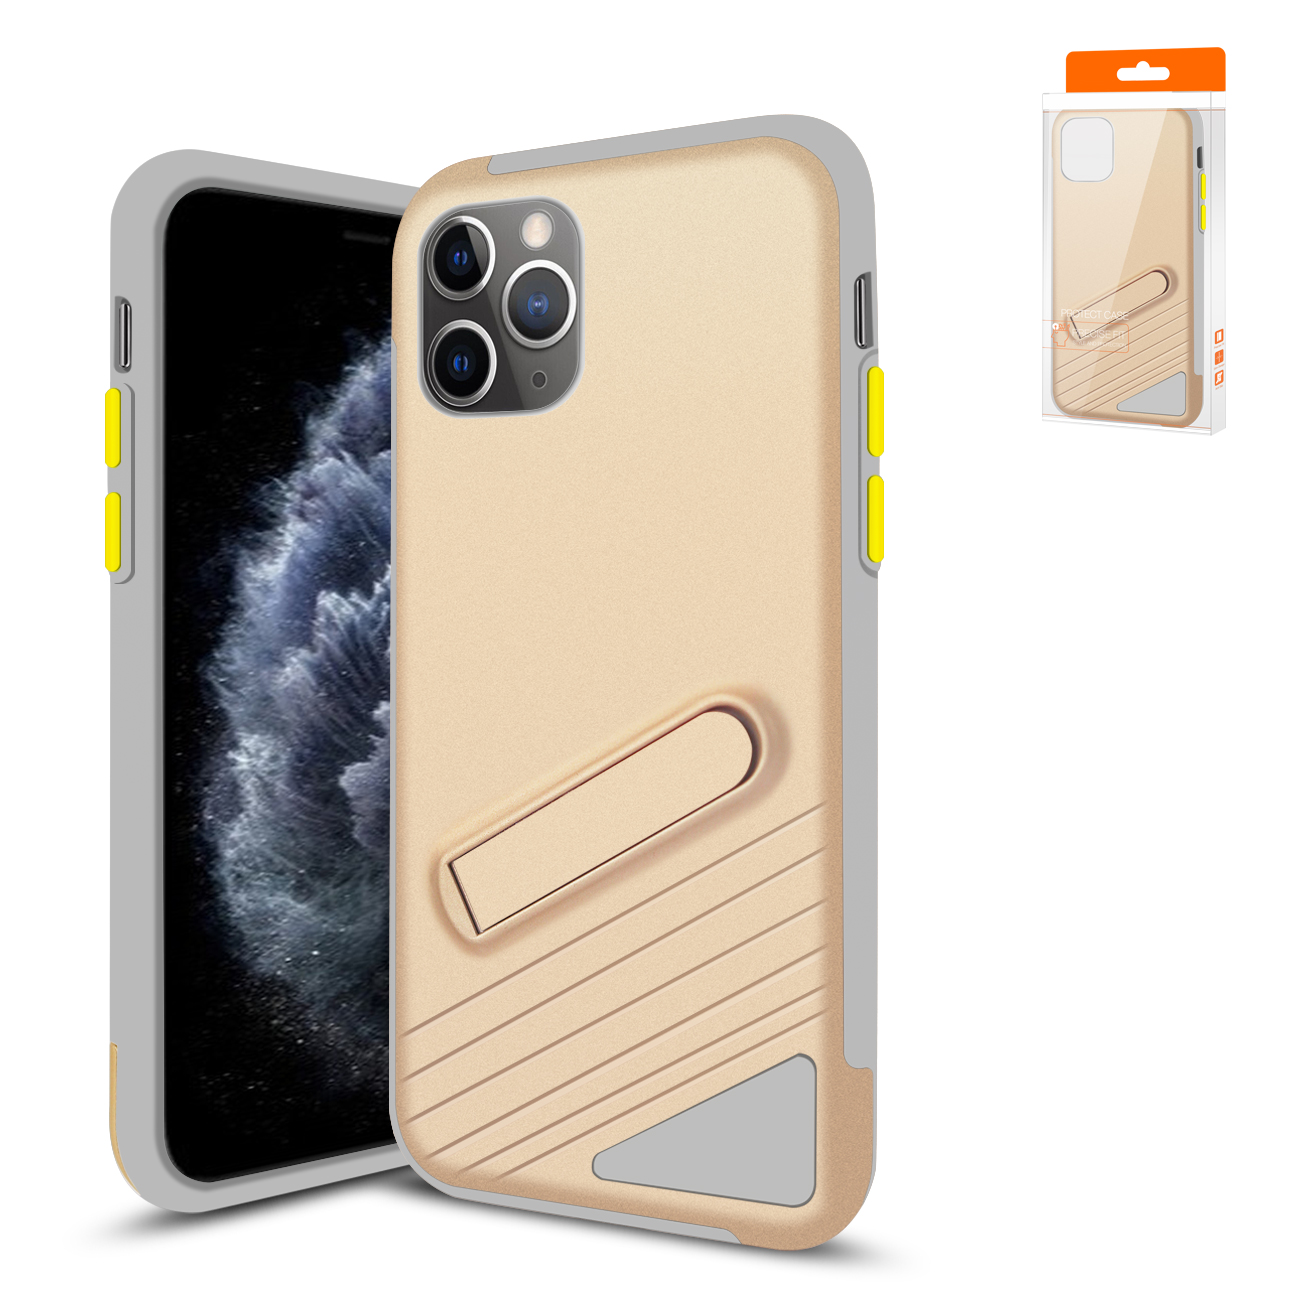 Apple iPhone 11 Pro Armor Cases In Gold